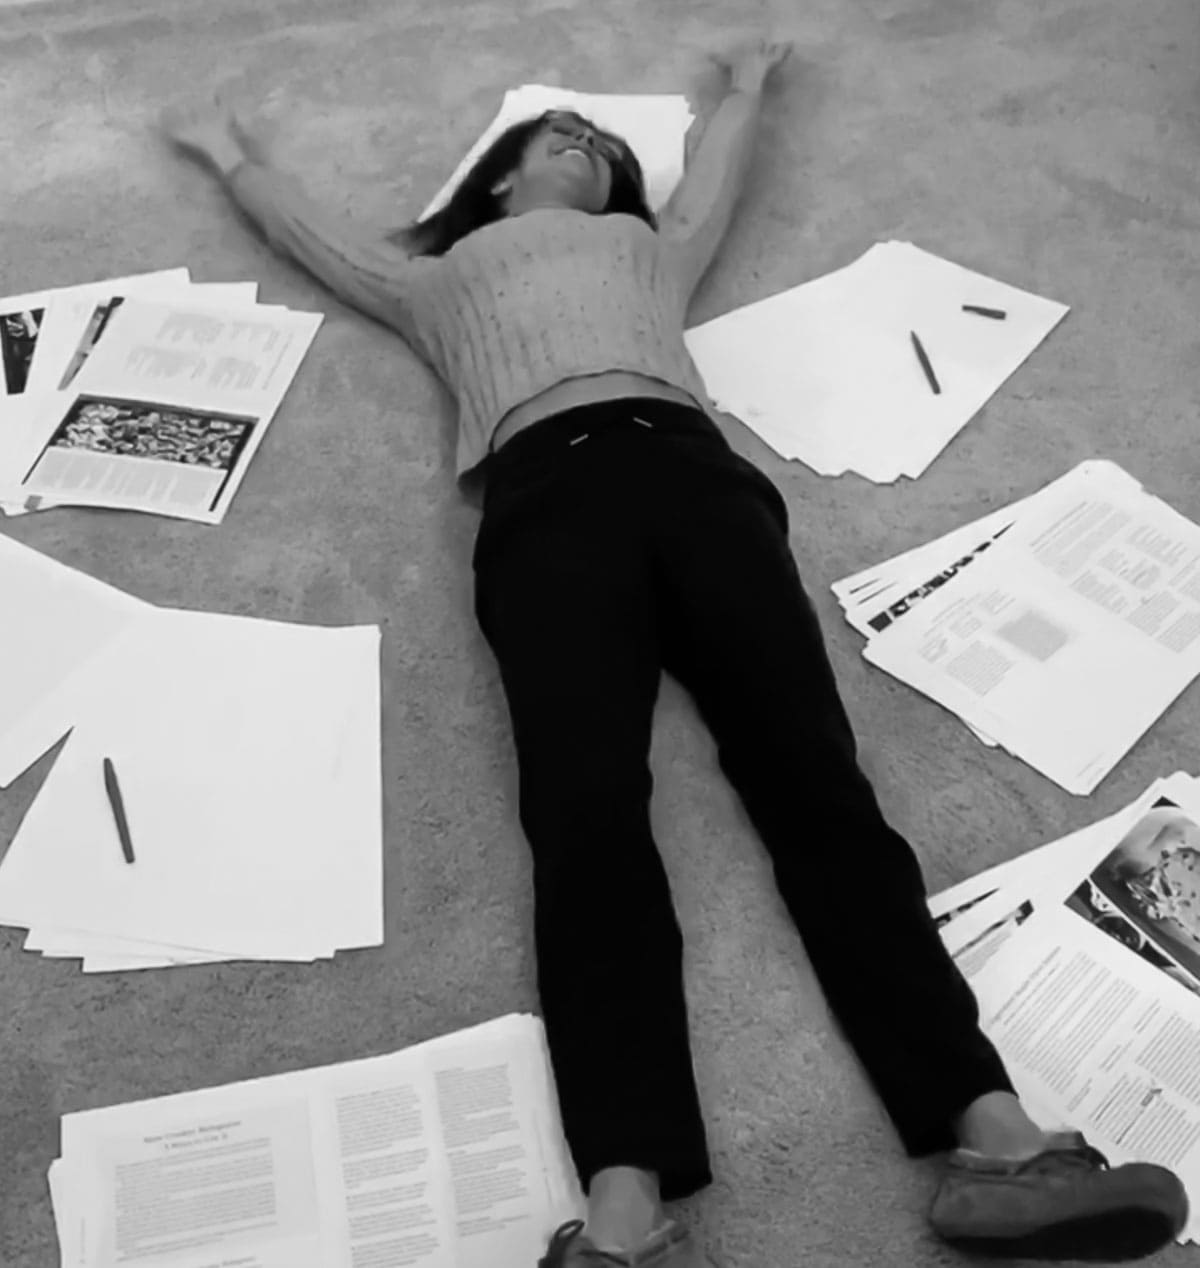 Girl on floor surrounded by papers